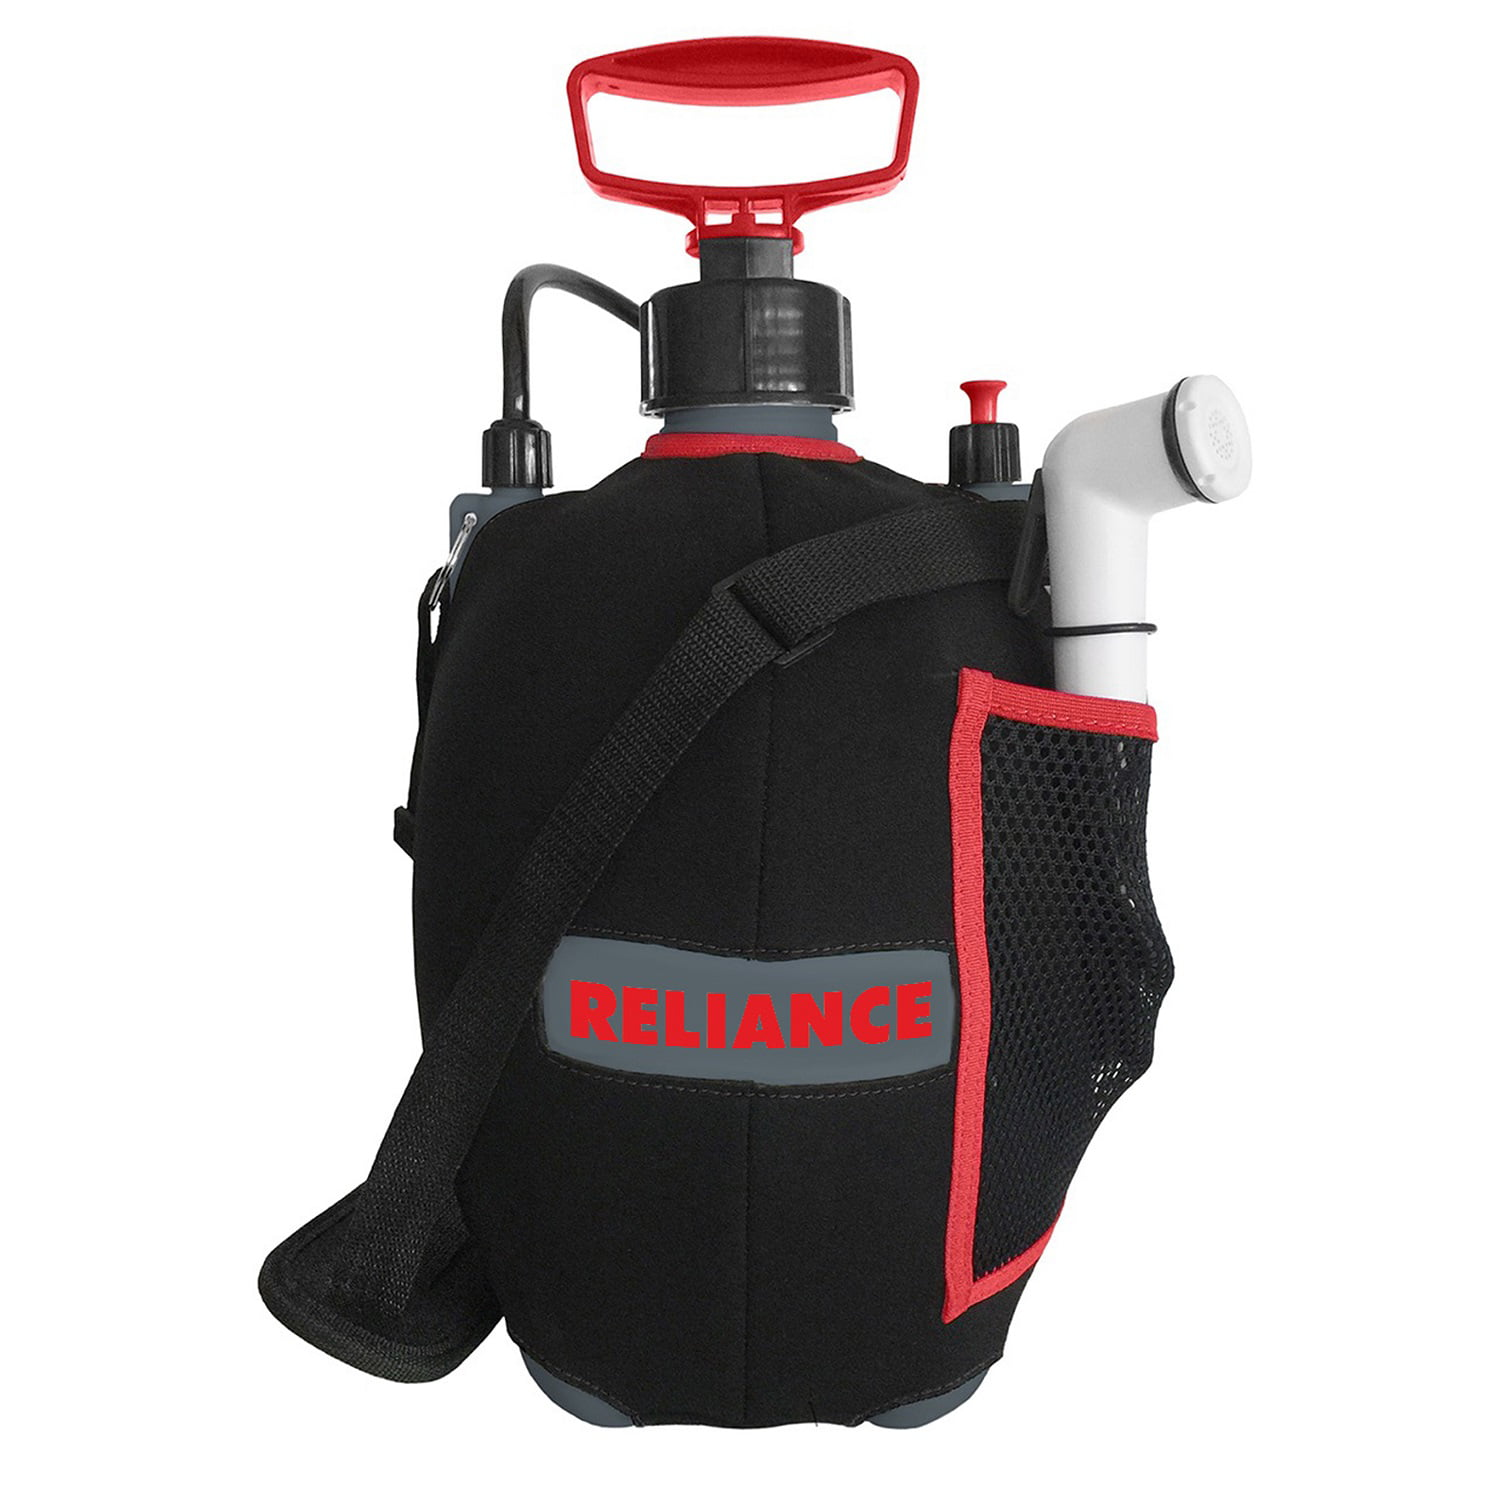 Reliance Portable Pump Shower 2.1 Gallon by Reliance Products